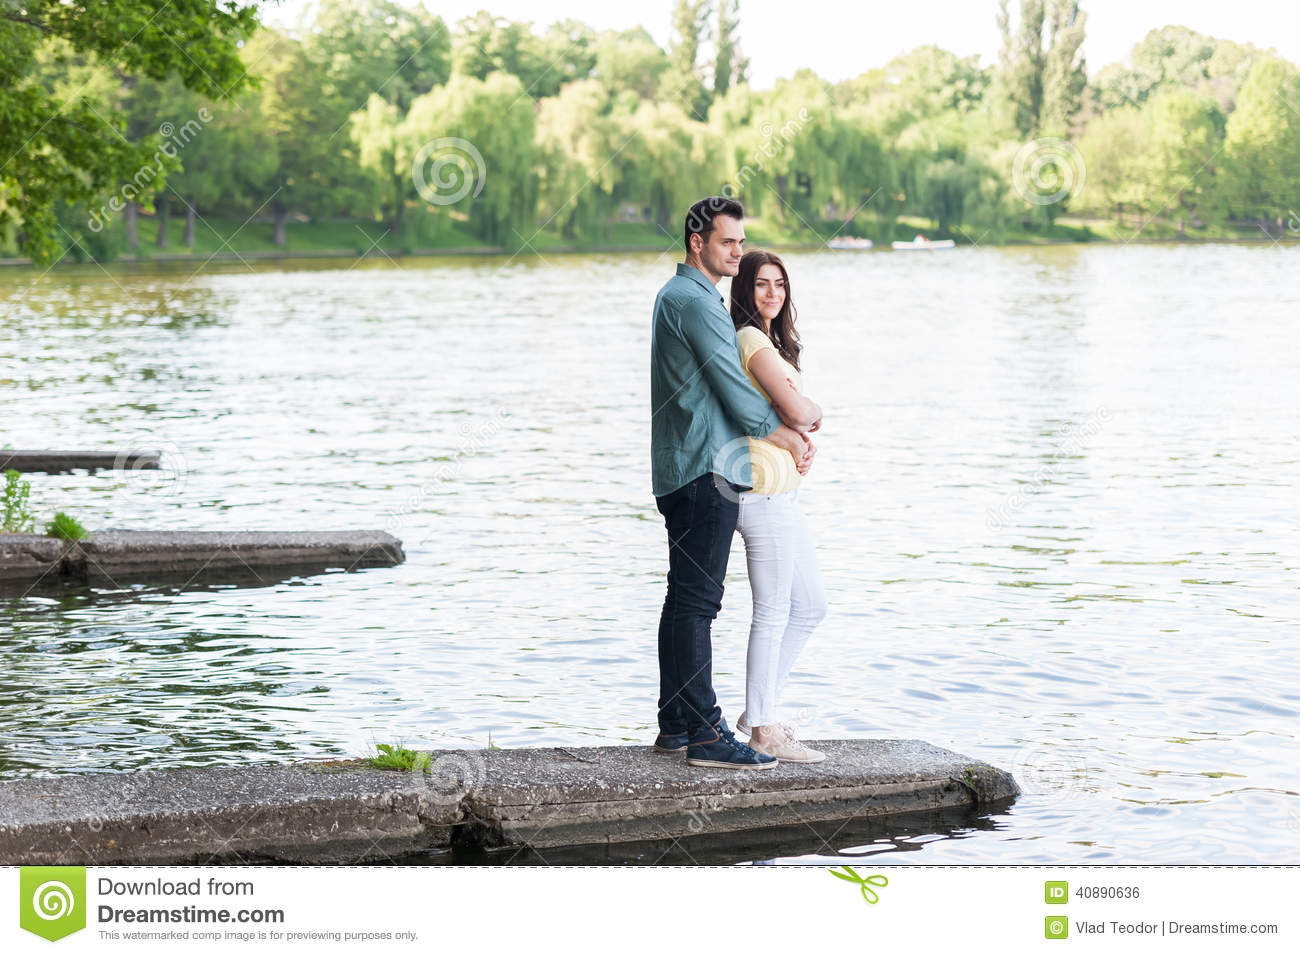 Spontaneous couple in love embraced on a stone pier